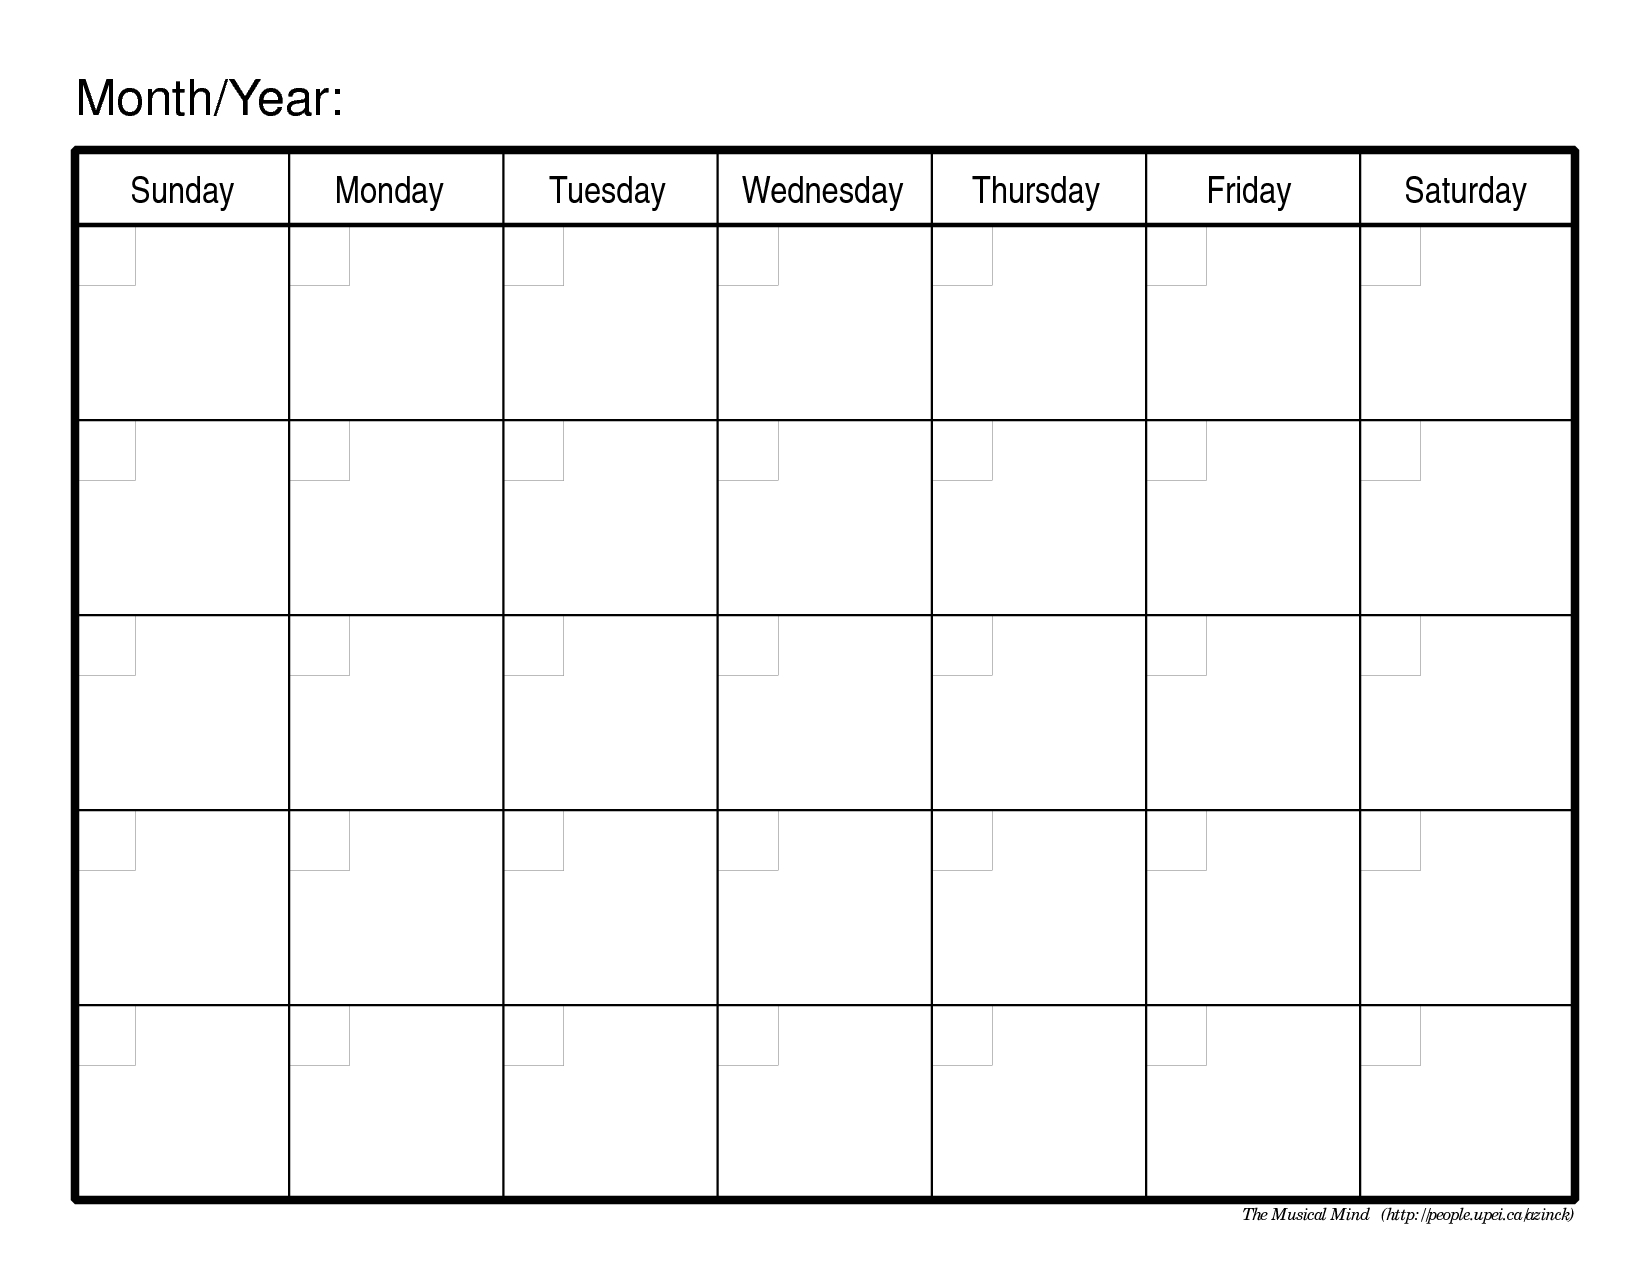 Monthly Calendar Template | Blank Calendar Pages, Weekly